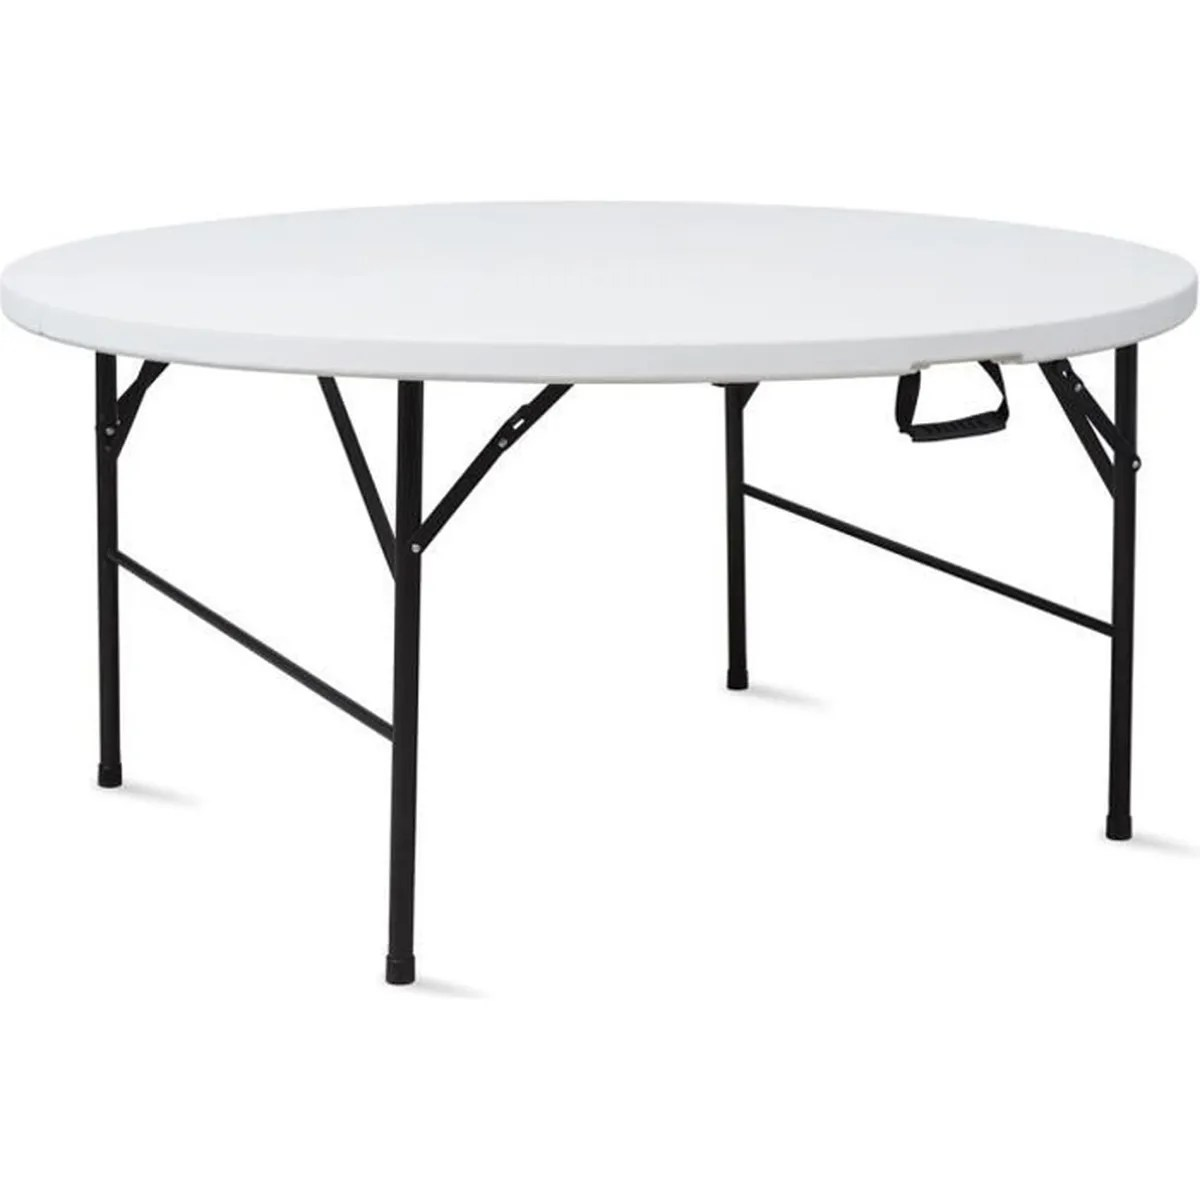 Table De Jardin Ronde Pliable | Table De Jardin Pliante Table ...